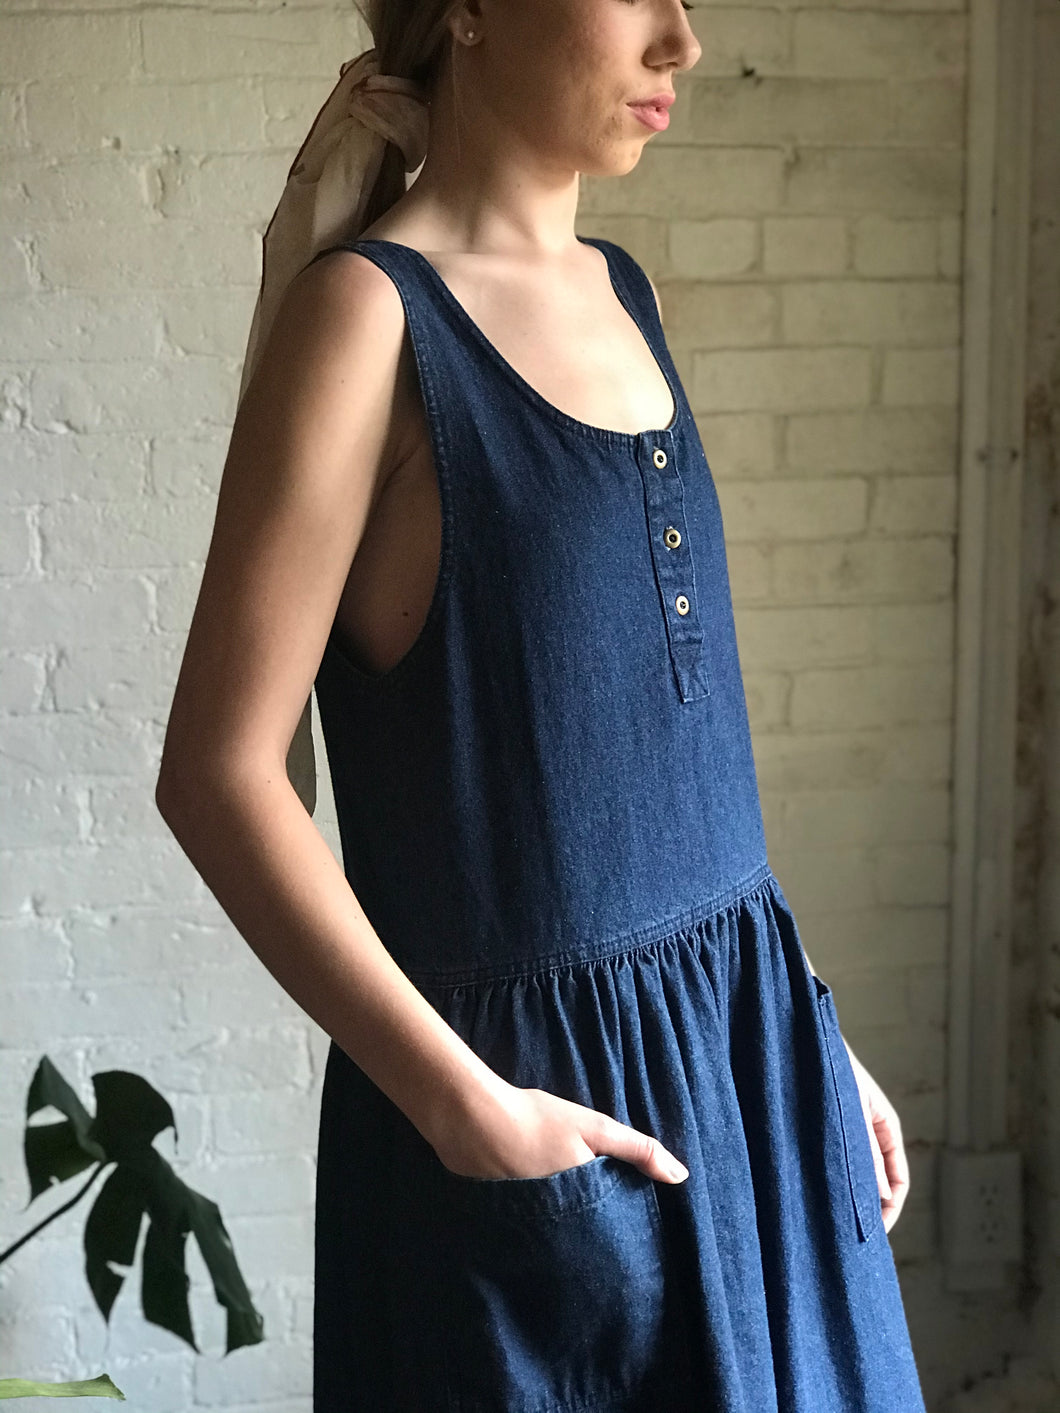 Vintage 1980's Cotton Denim Jumper Dress